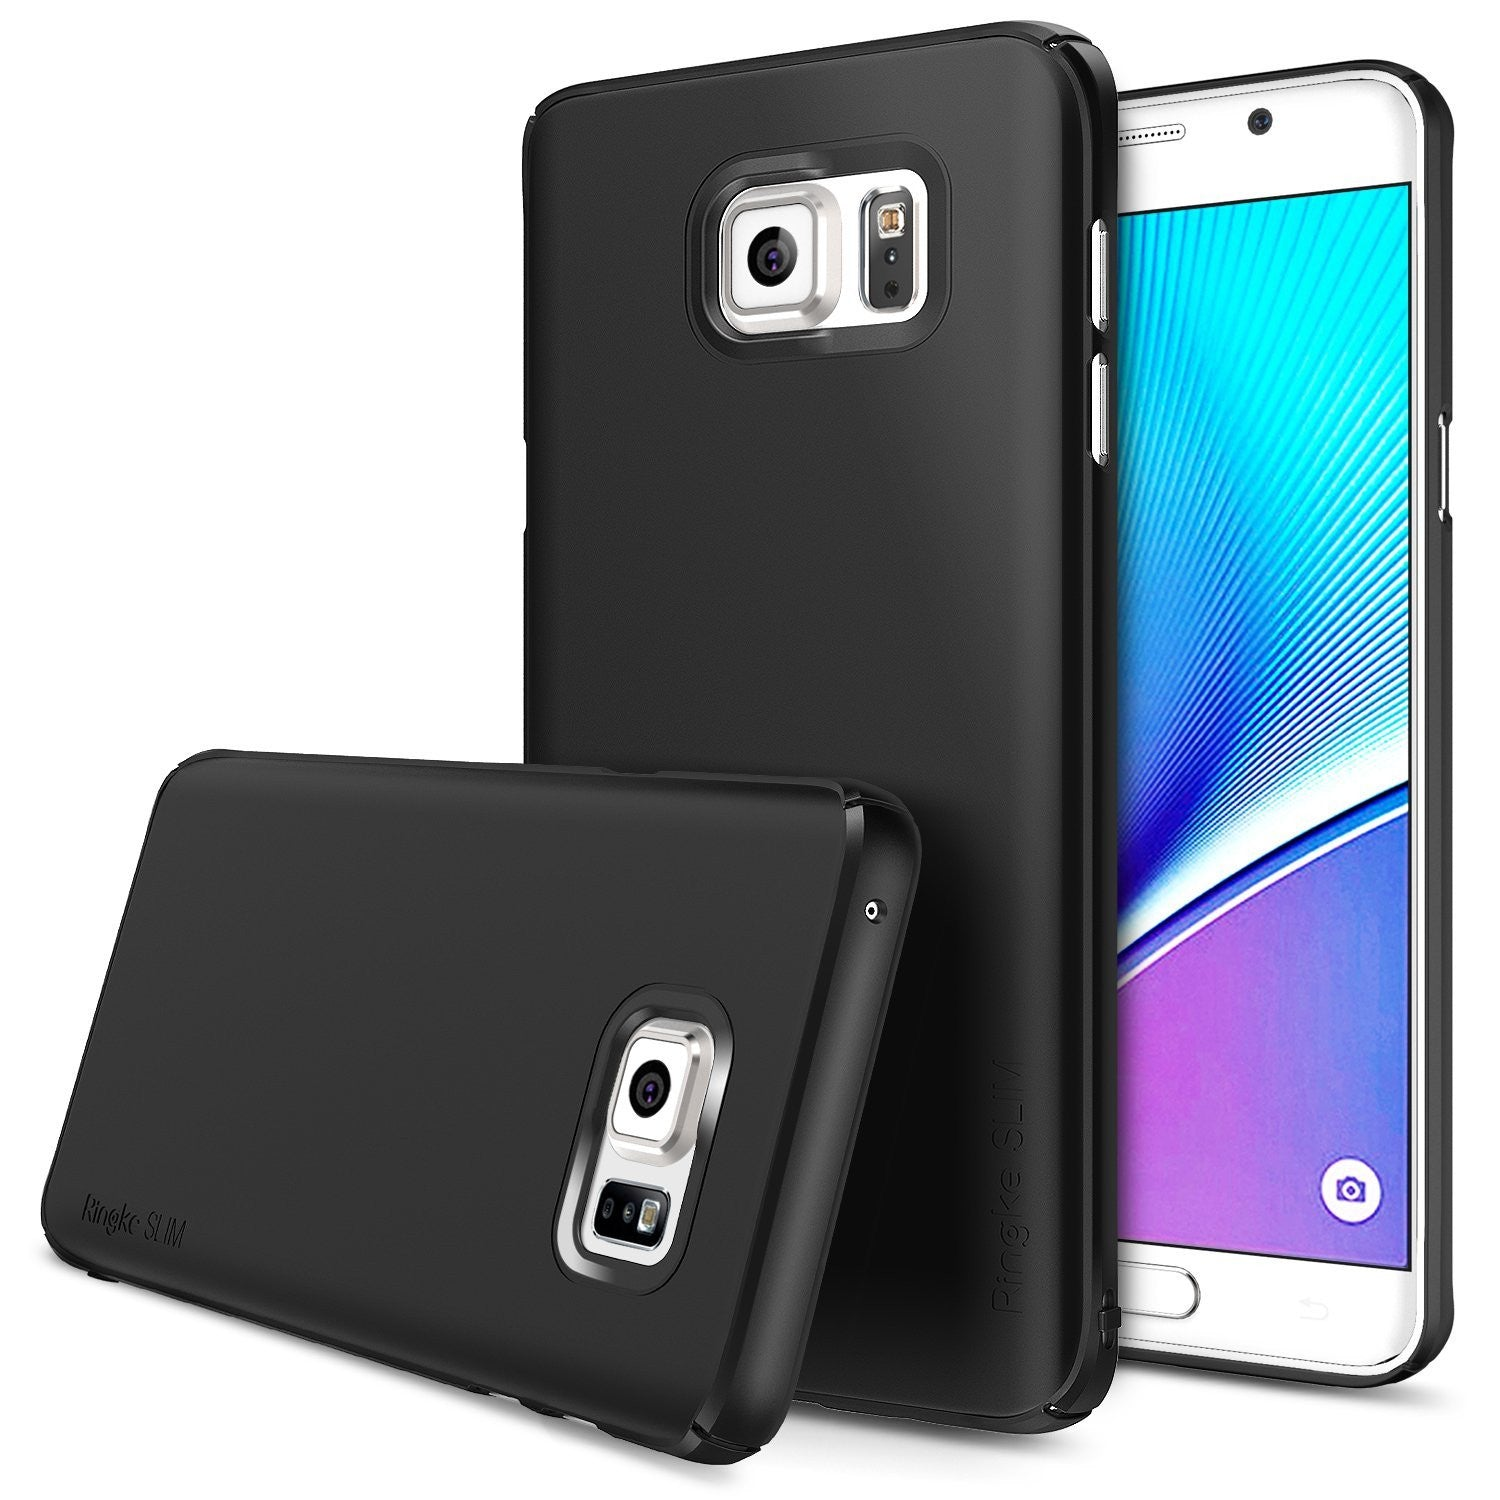 Galaxy Note 5 Case, Ringke® [Slim] Lightweight & Thin Superior Coaring PC Hard Case